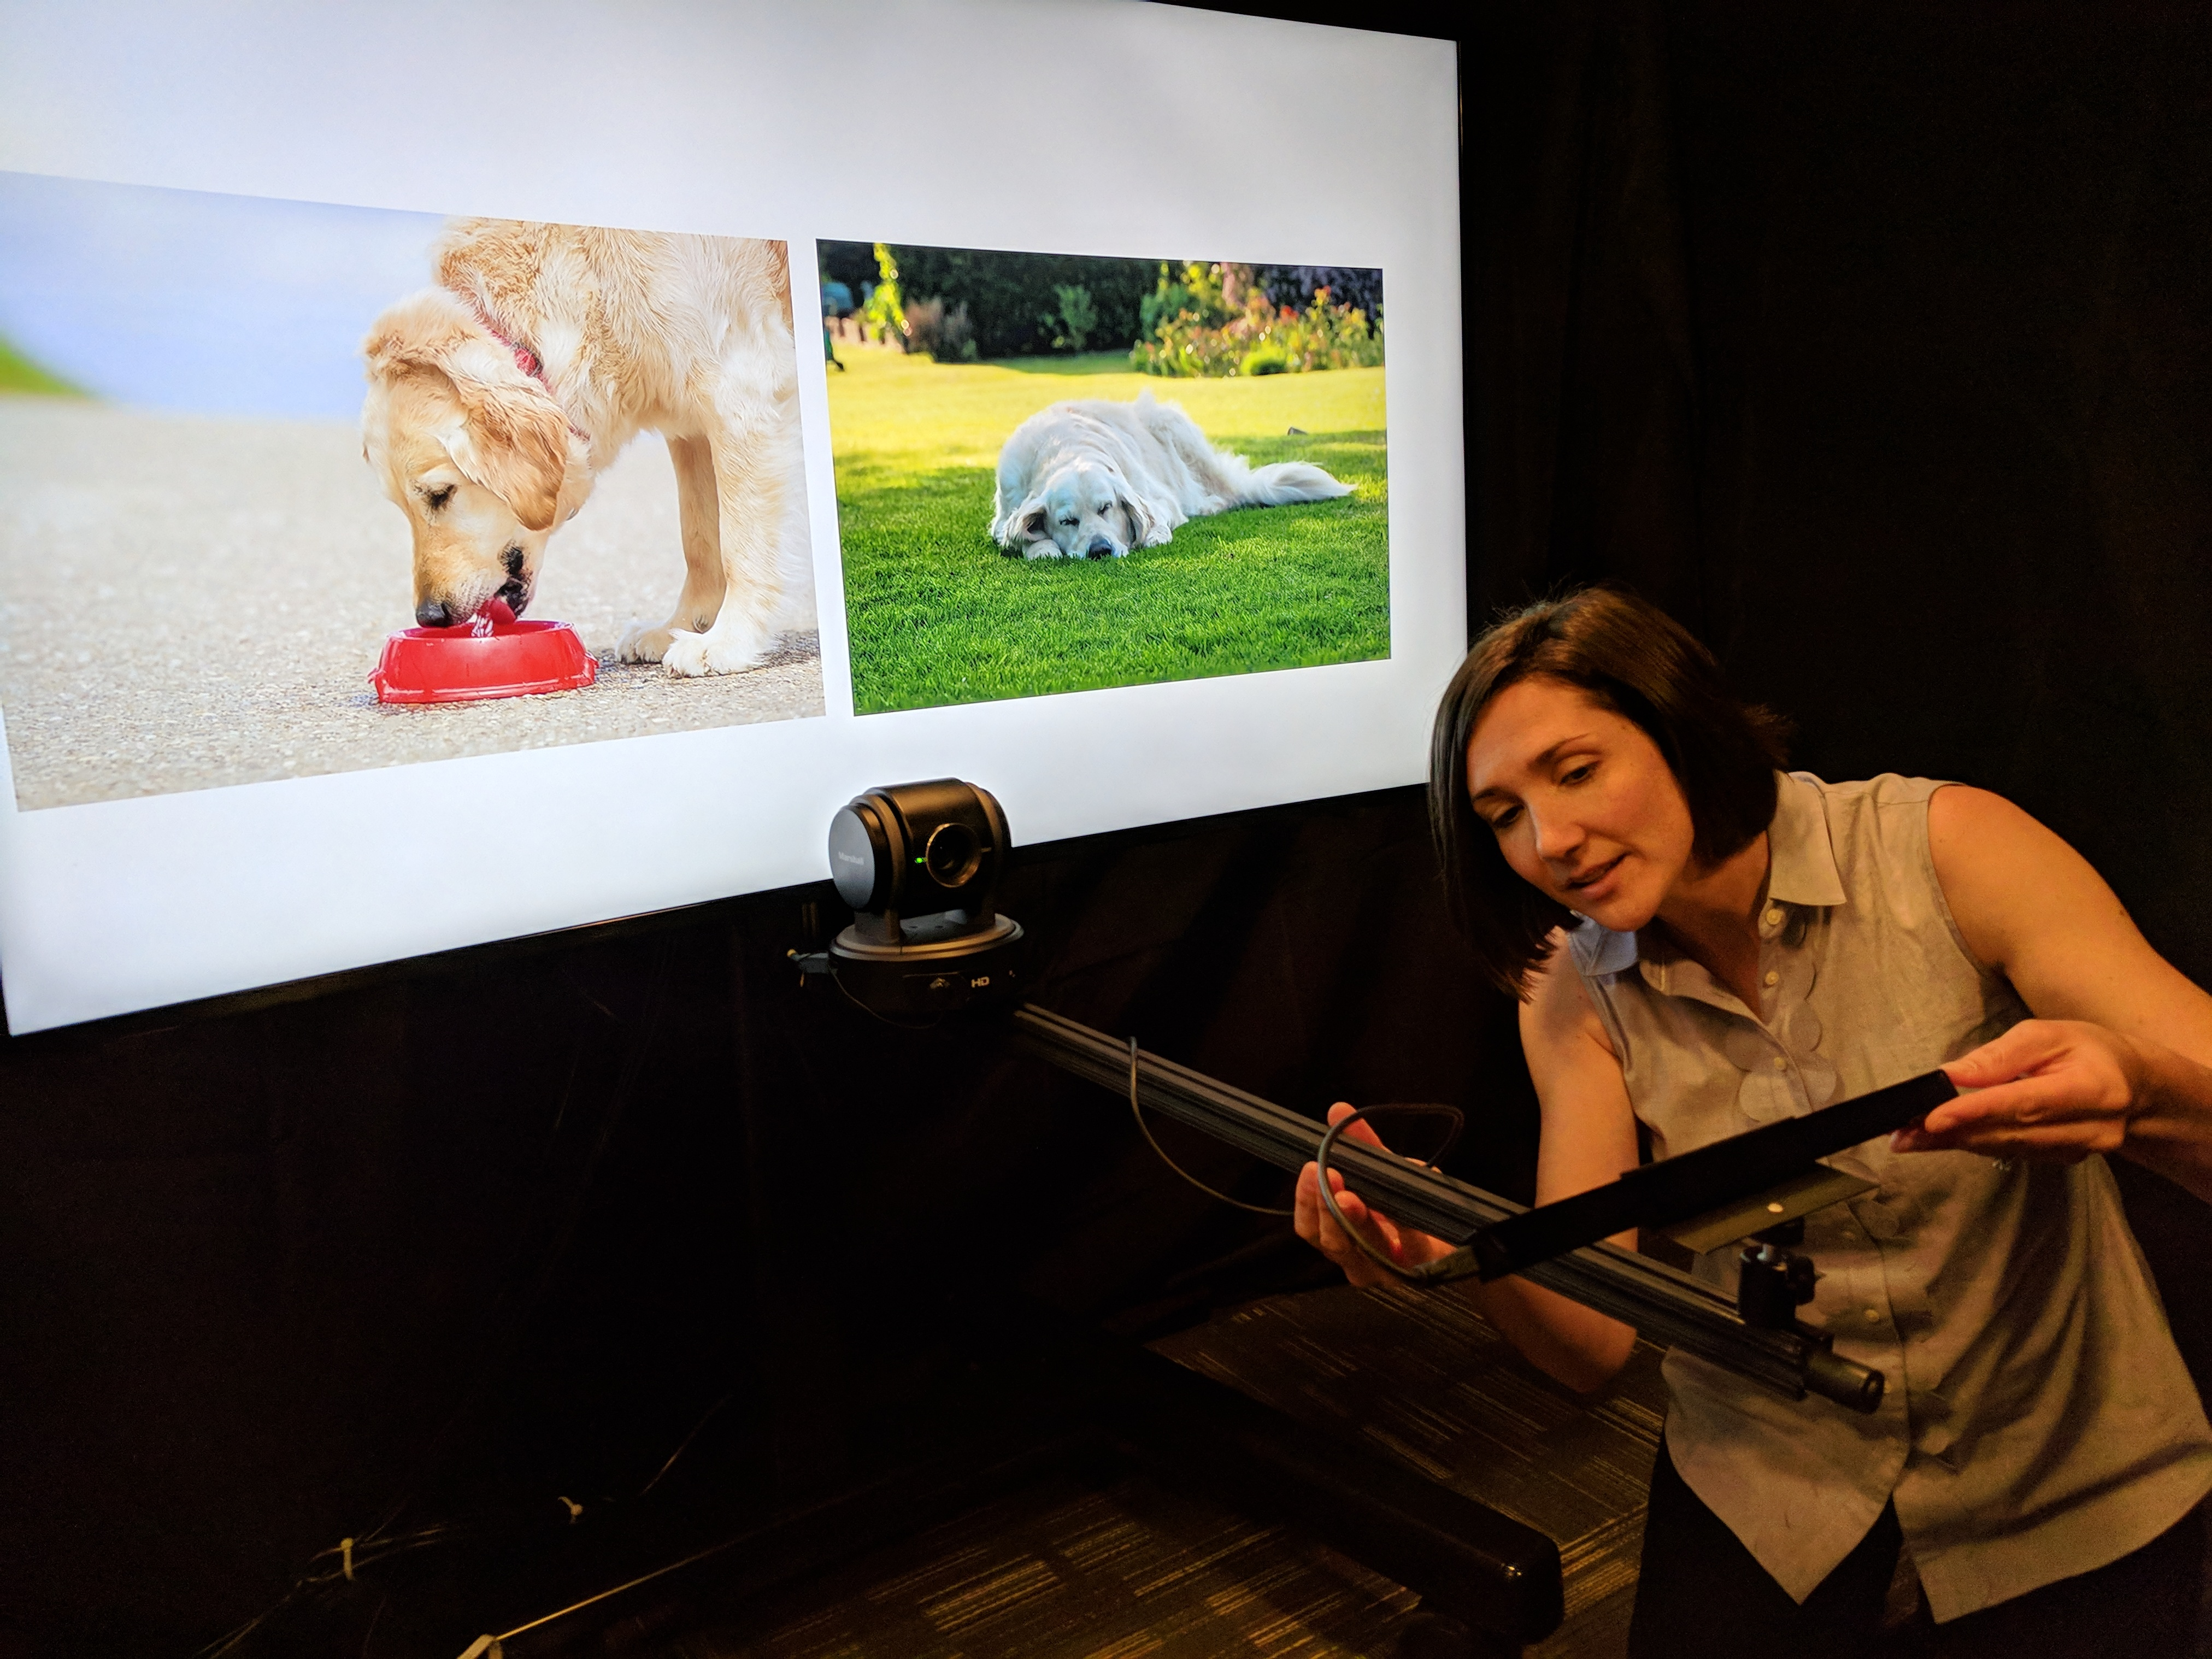 Courtney Venker tests eye-tracking device at the Lingo Lab